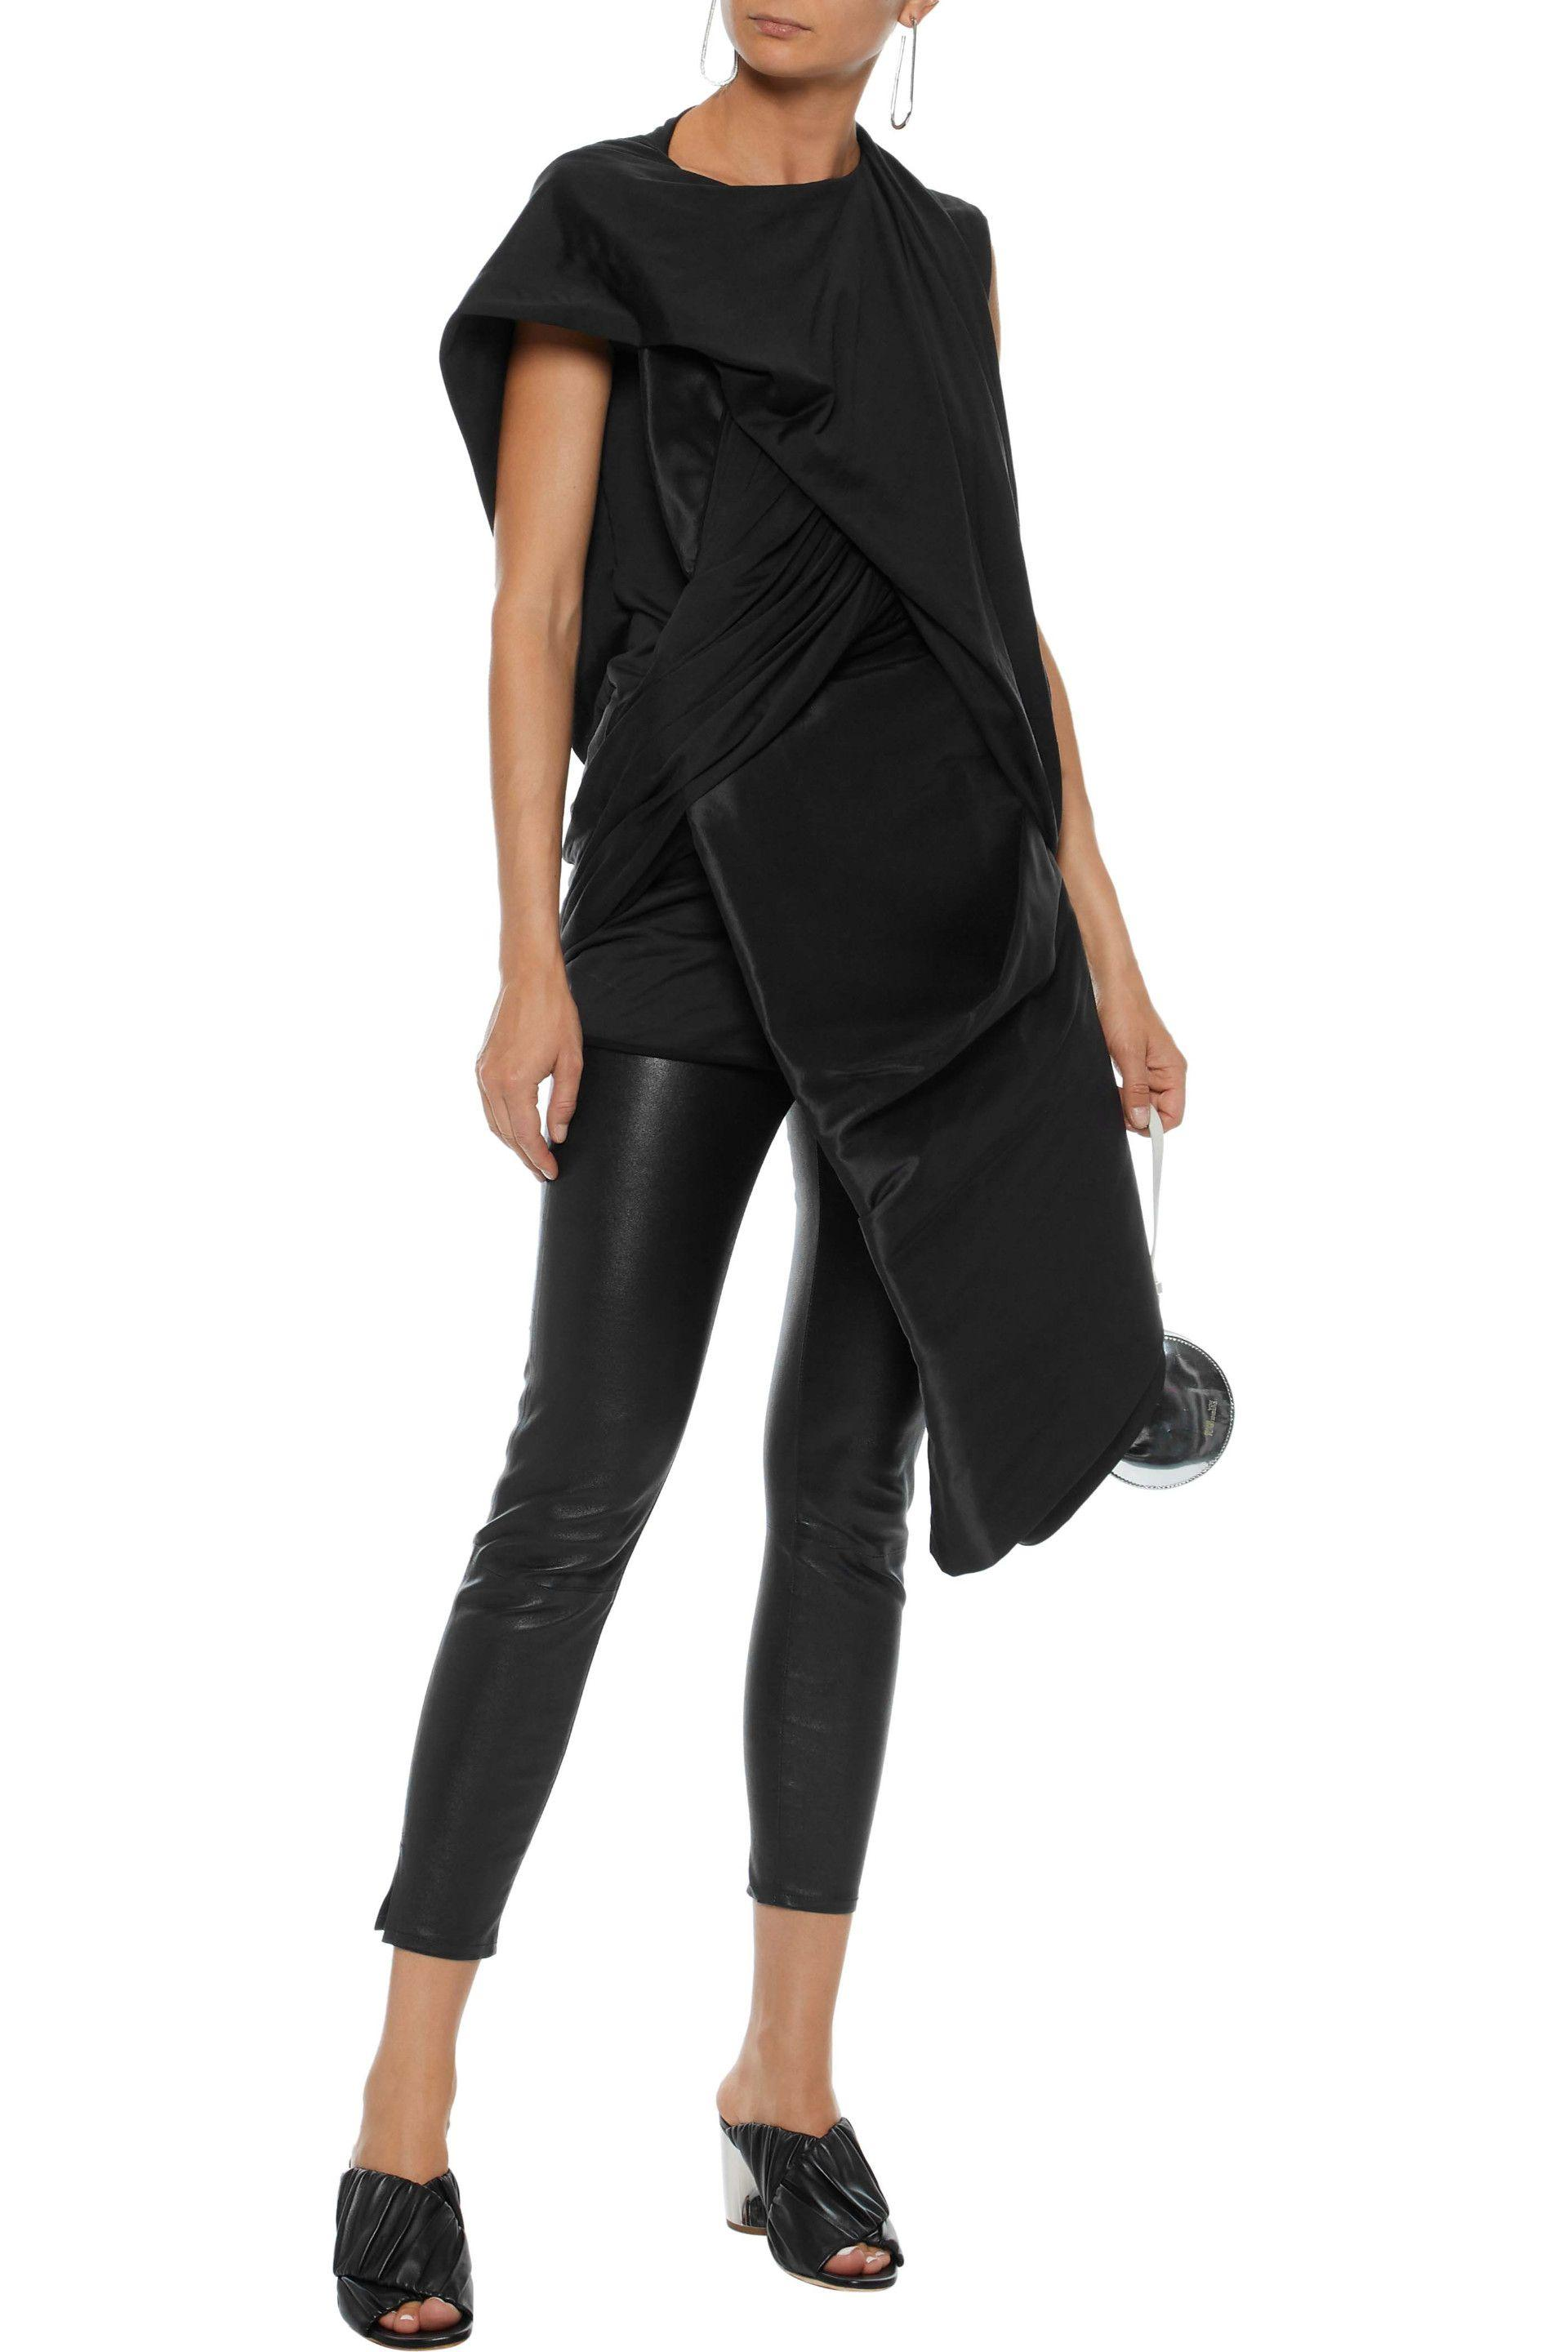 961570c362dce Rick Owens - Woman Stomper Asymmetric Satin-paneled Silk-jersey Top Black -  Lyst. View fullscreen